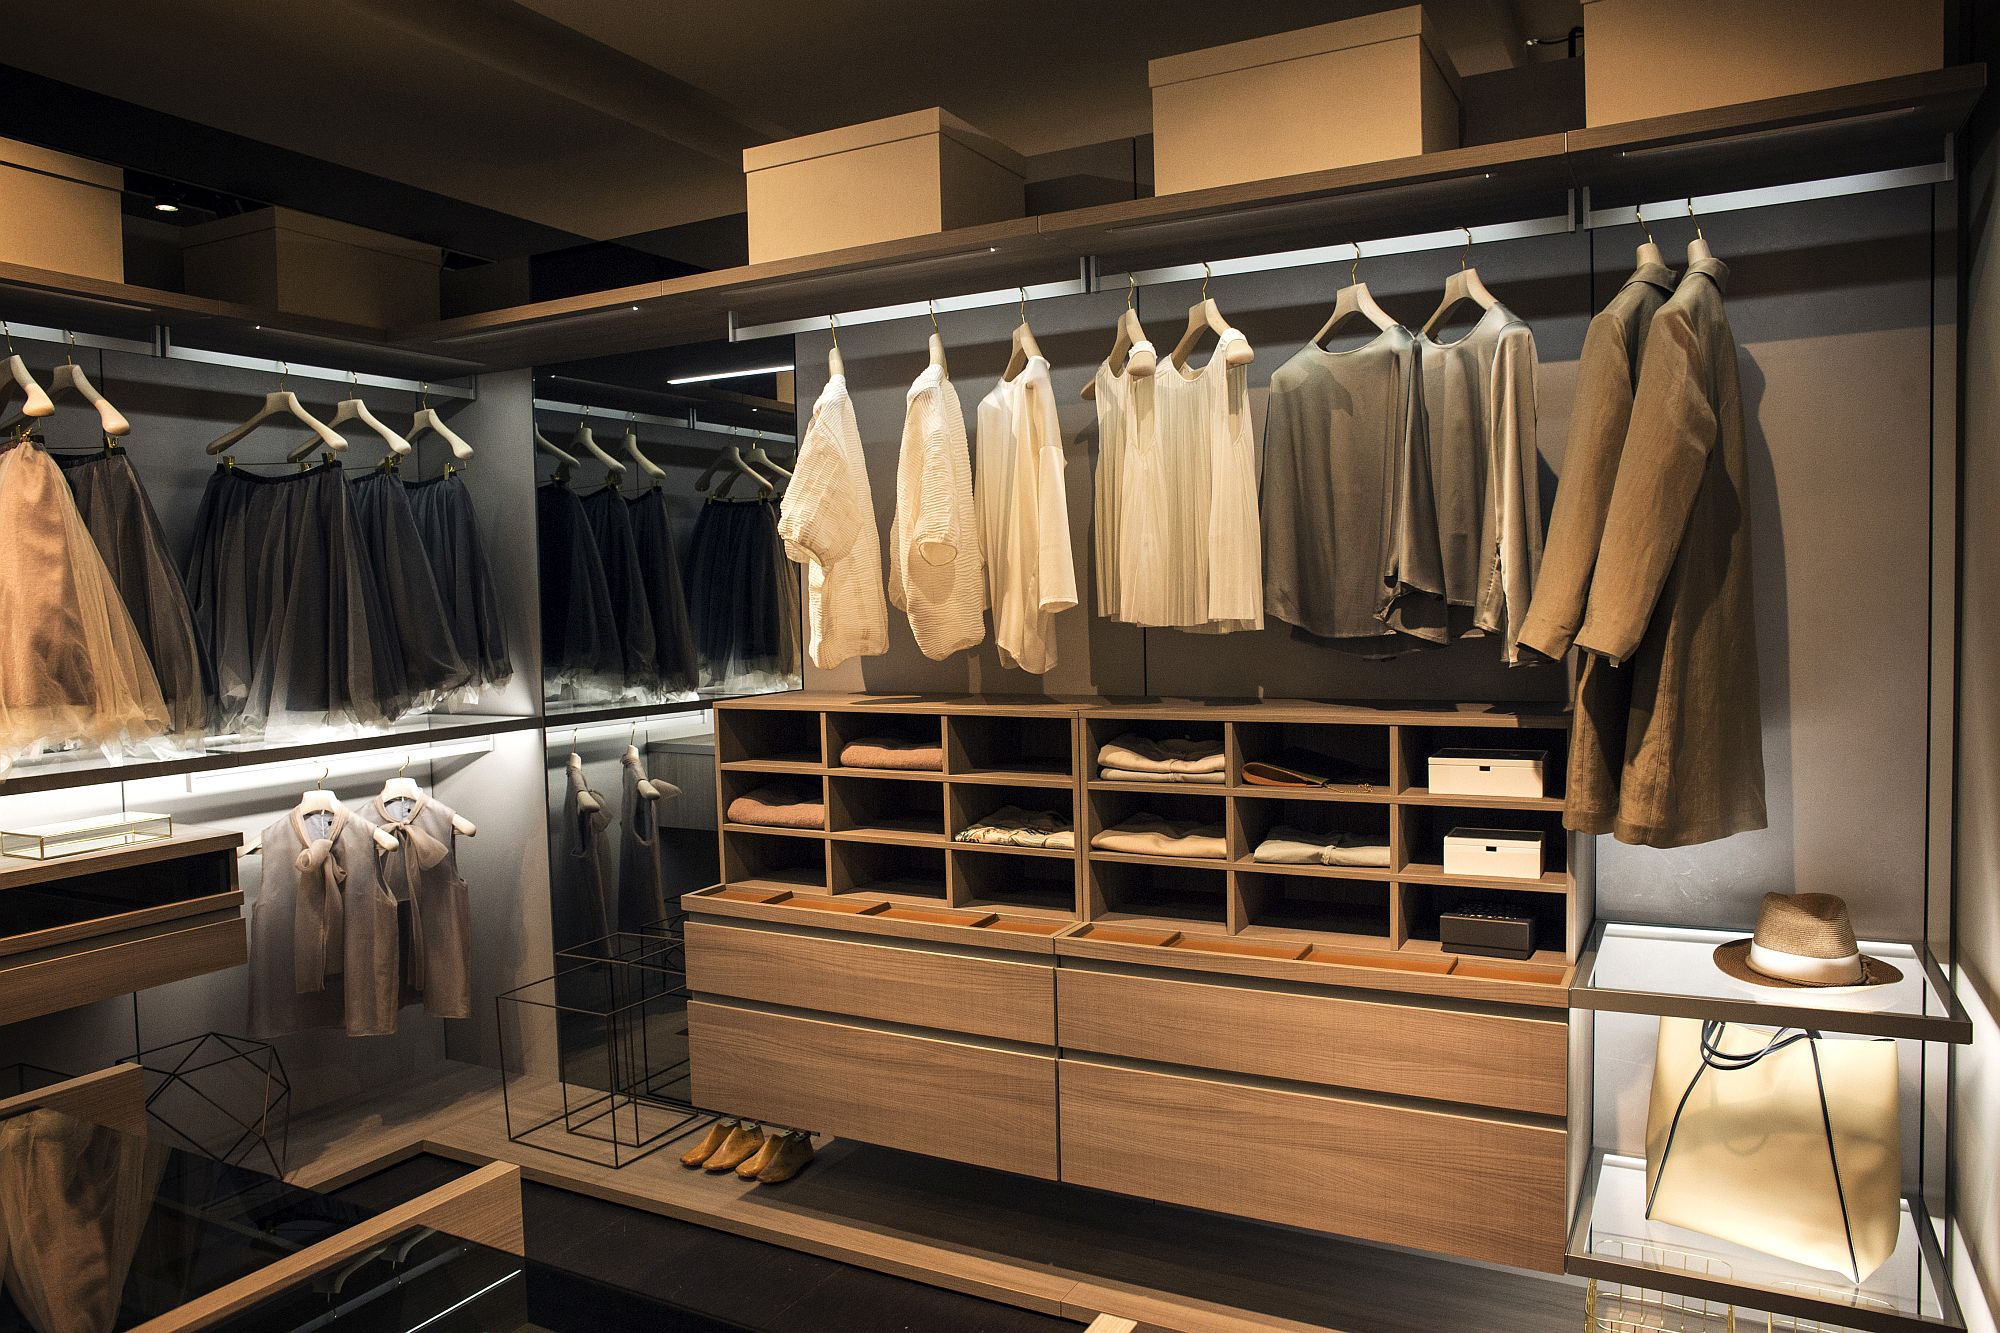 Spacious and stylish wlak-in closet has it all